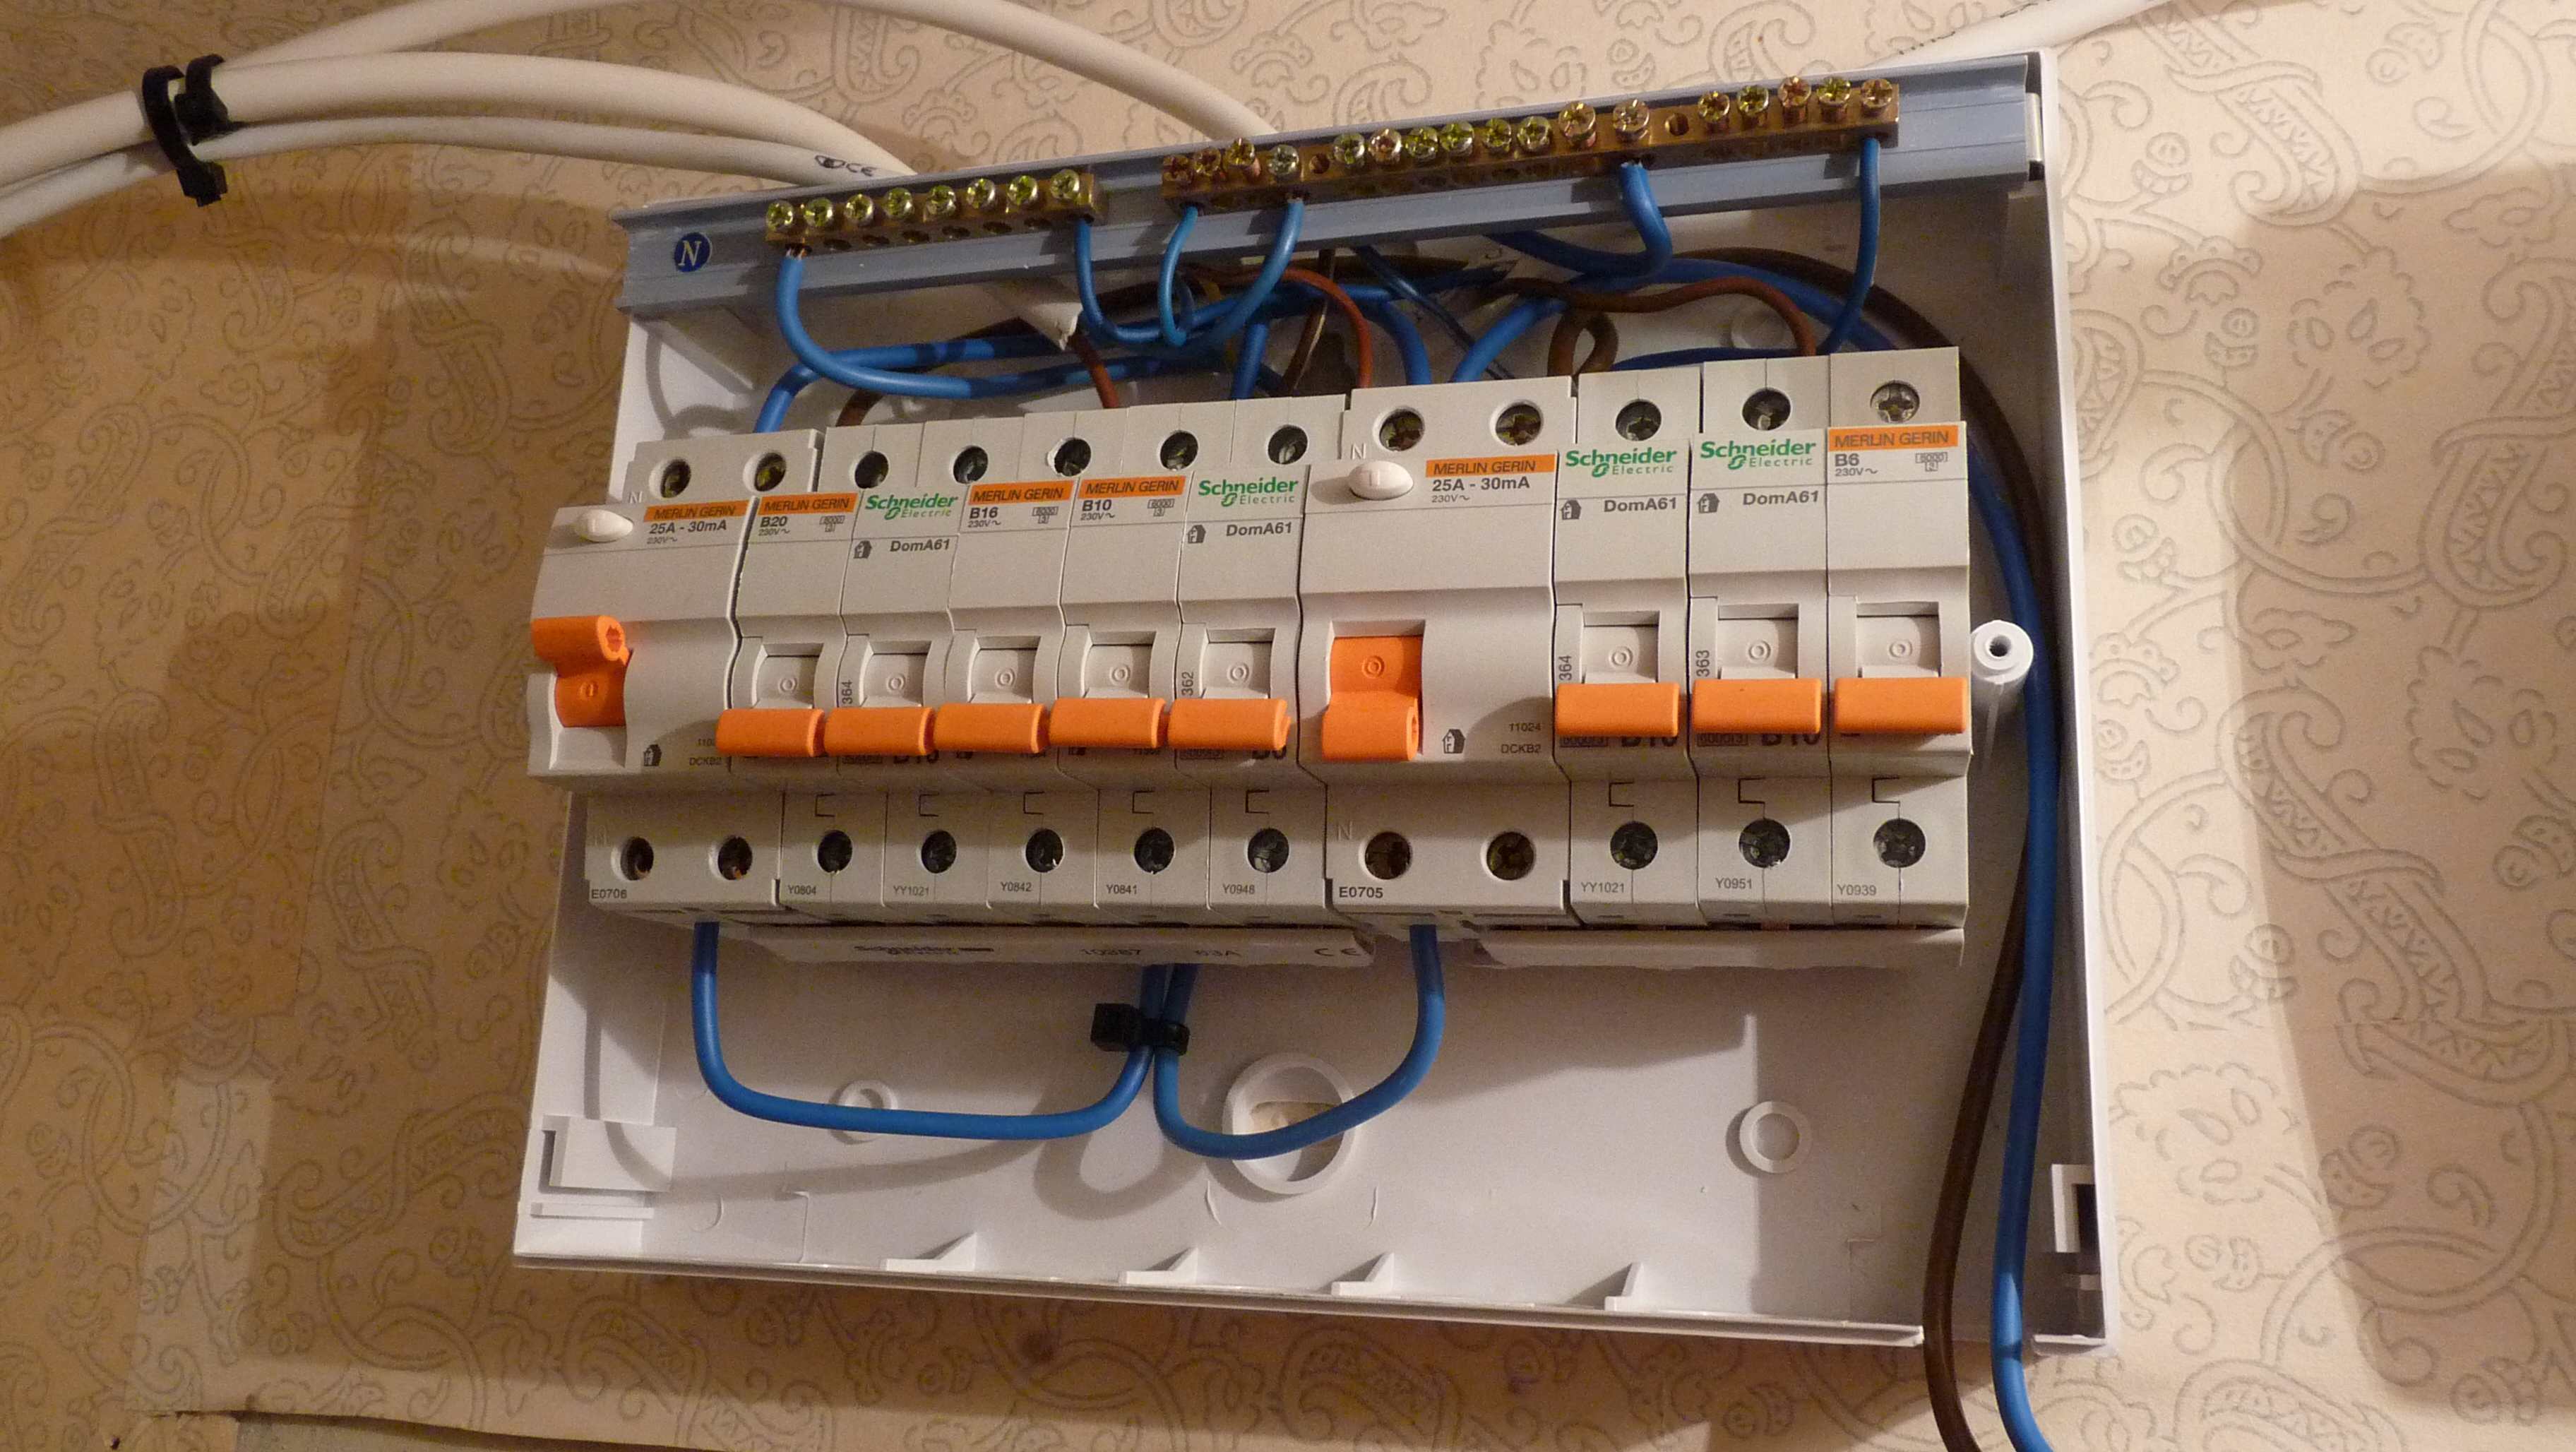 Wiring a fuse board wire center file wiring of european fuse box jpg wikimedia commons rh commons wikimedia org wiring a fuse box and outlets wiring a distribution board asfbconference2016 Images